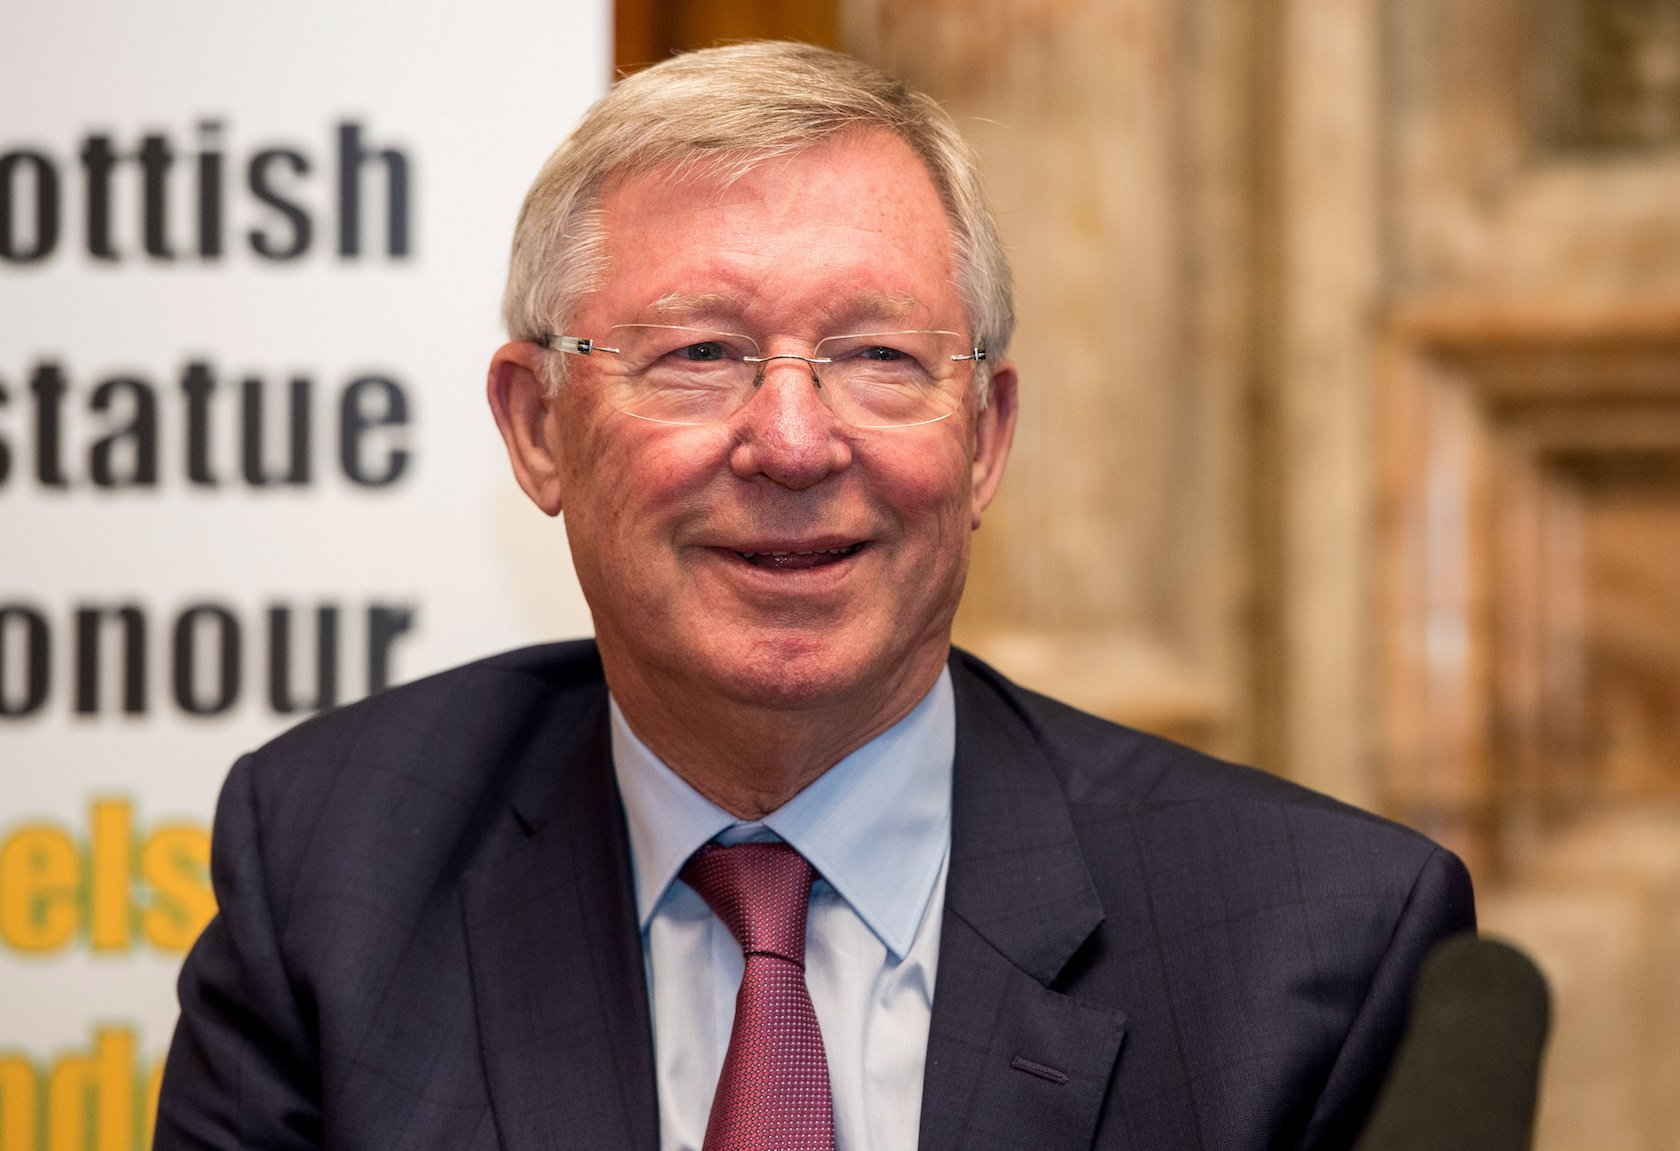 Wenger Wishes Sir Alex Ferguson Speedy Recovery Daily Business